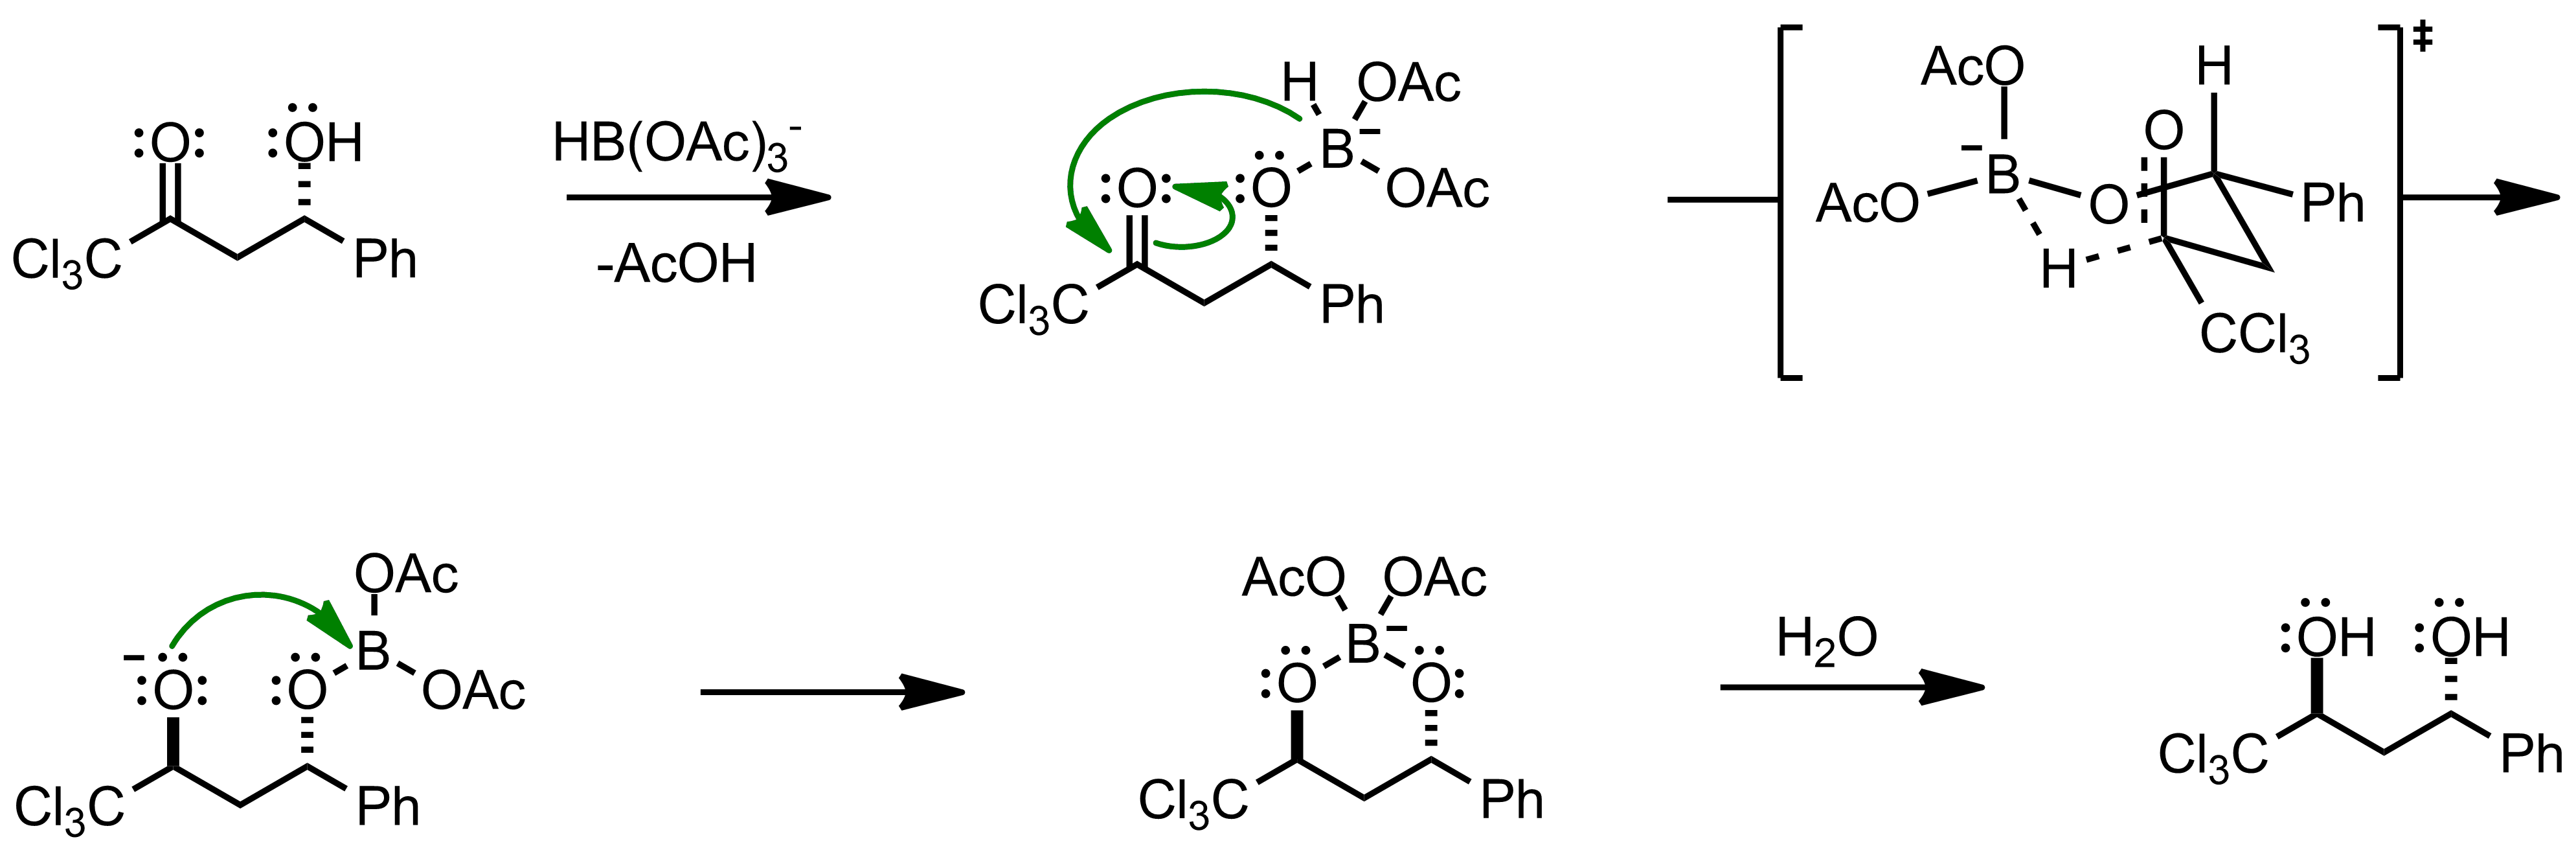 Mechanism of the Evans-Saksena Reduction